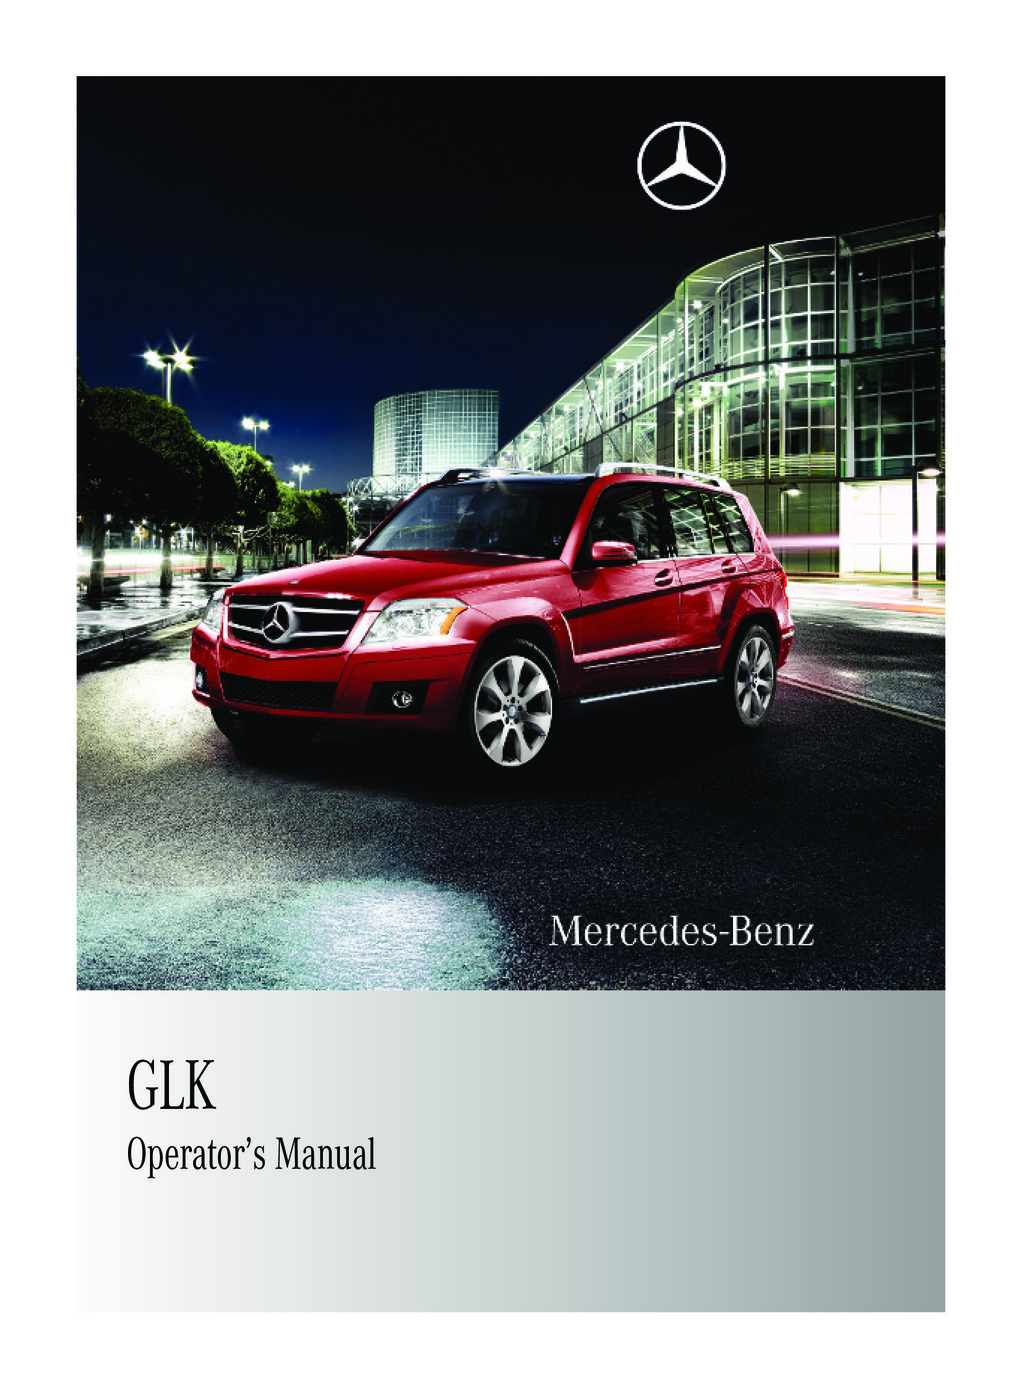 2010 Mercedes-Benz GLK Class owners manual